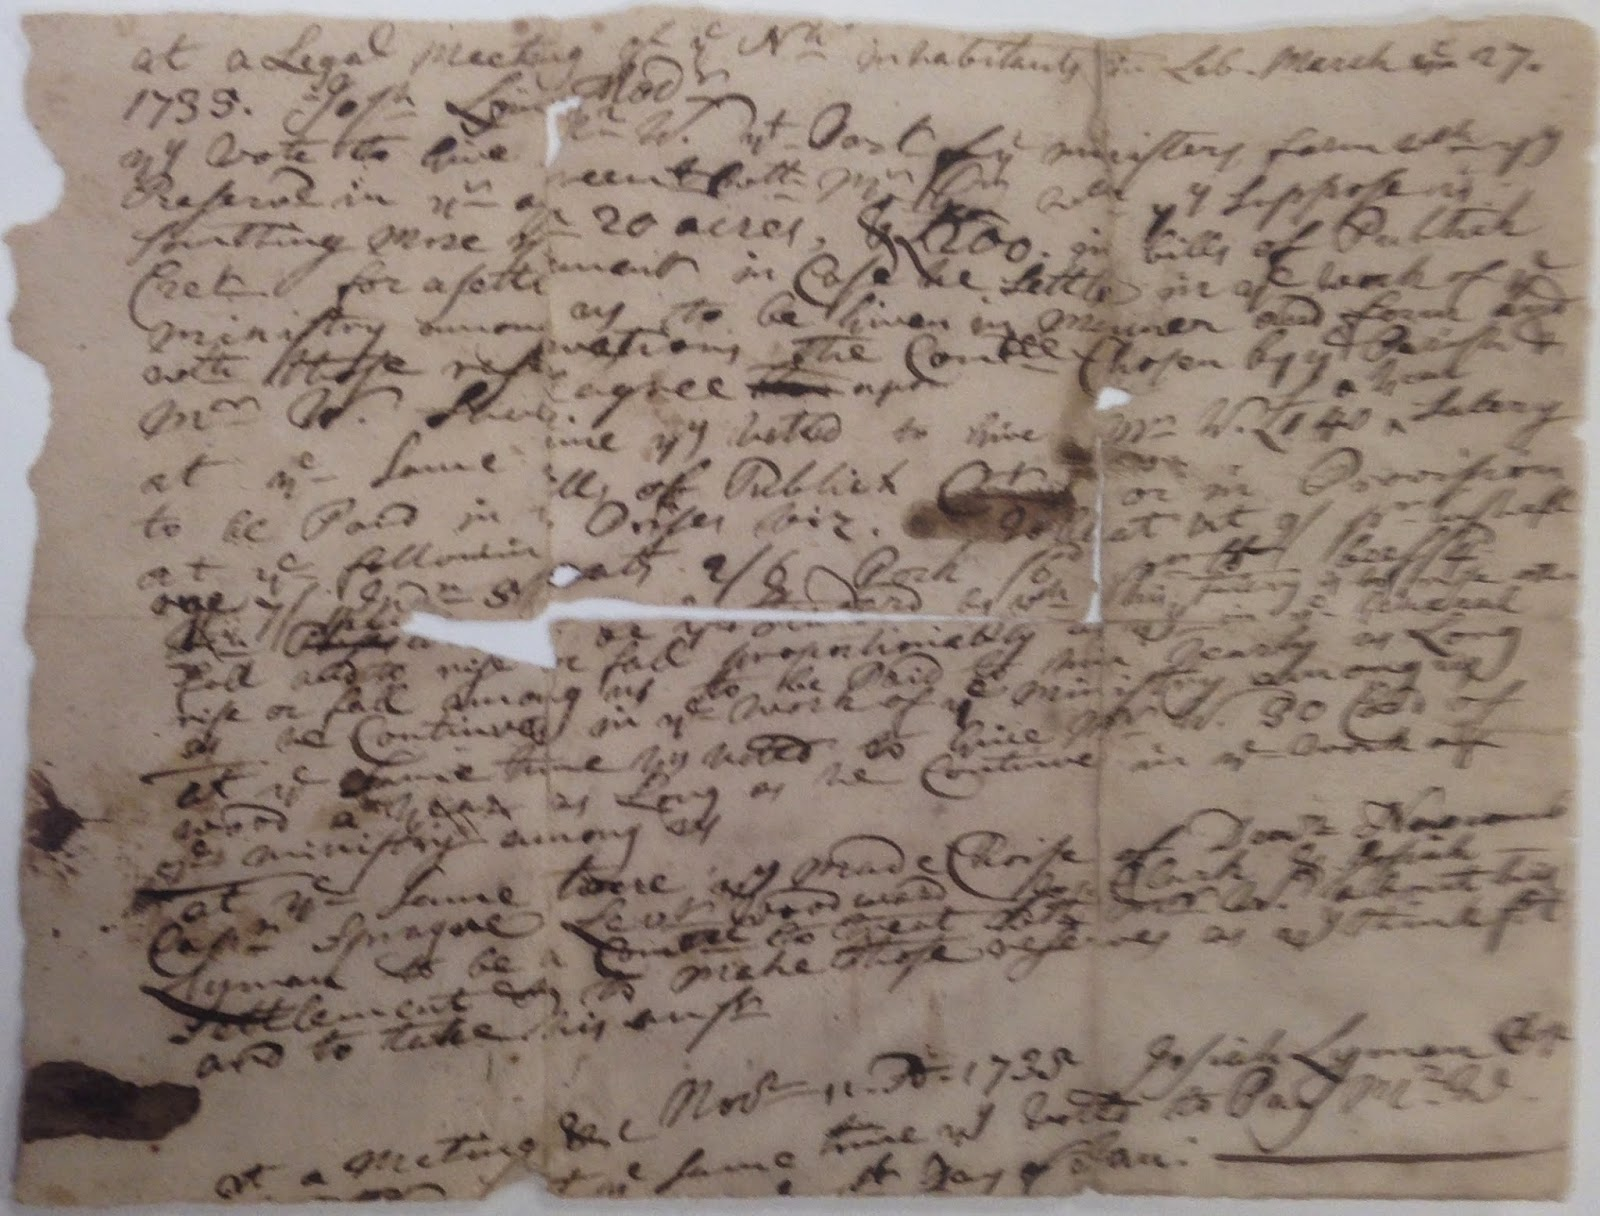 A handwritten page of text.